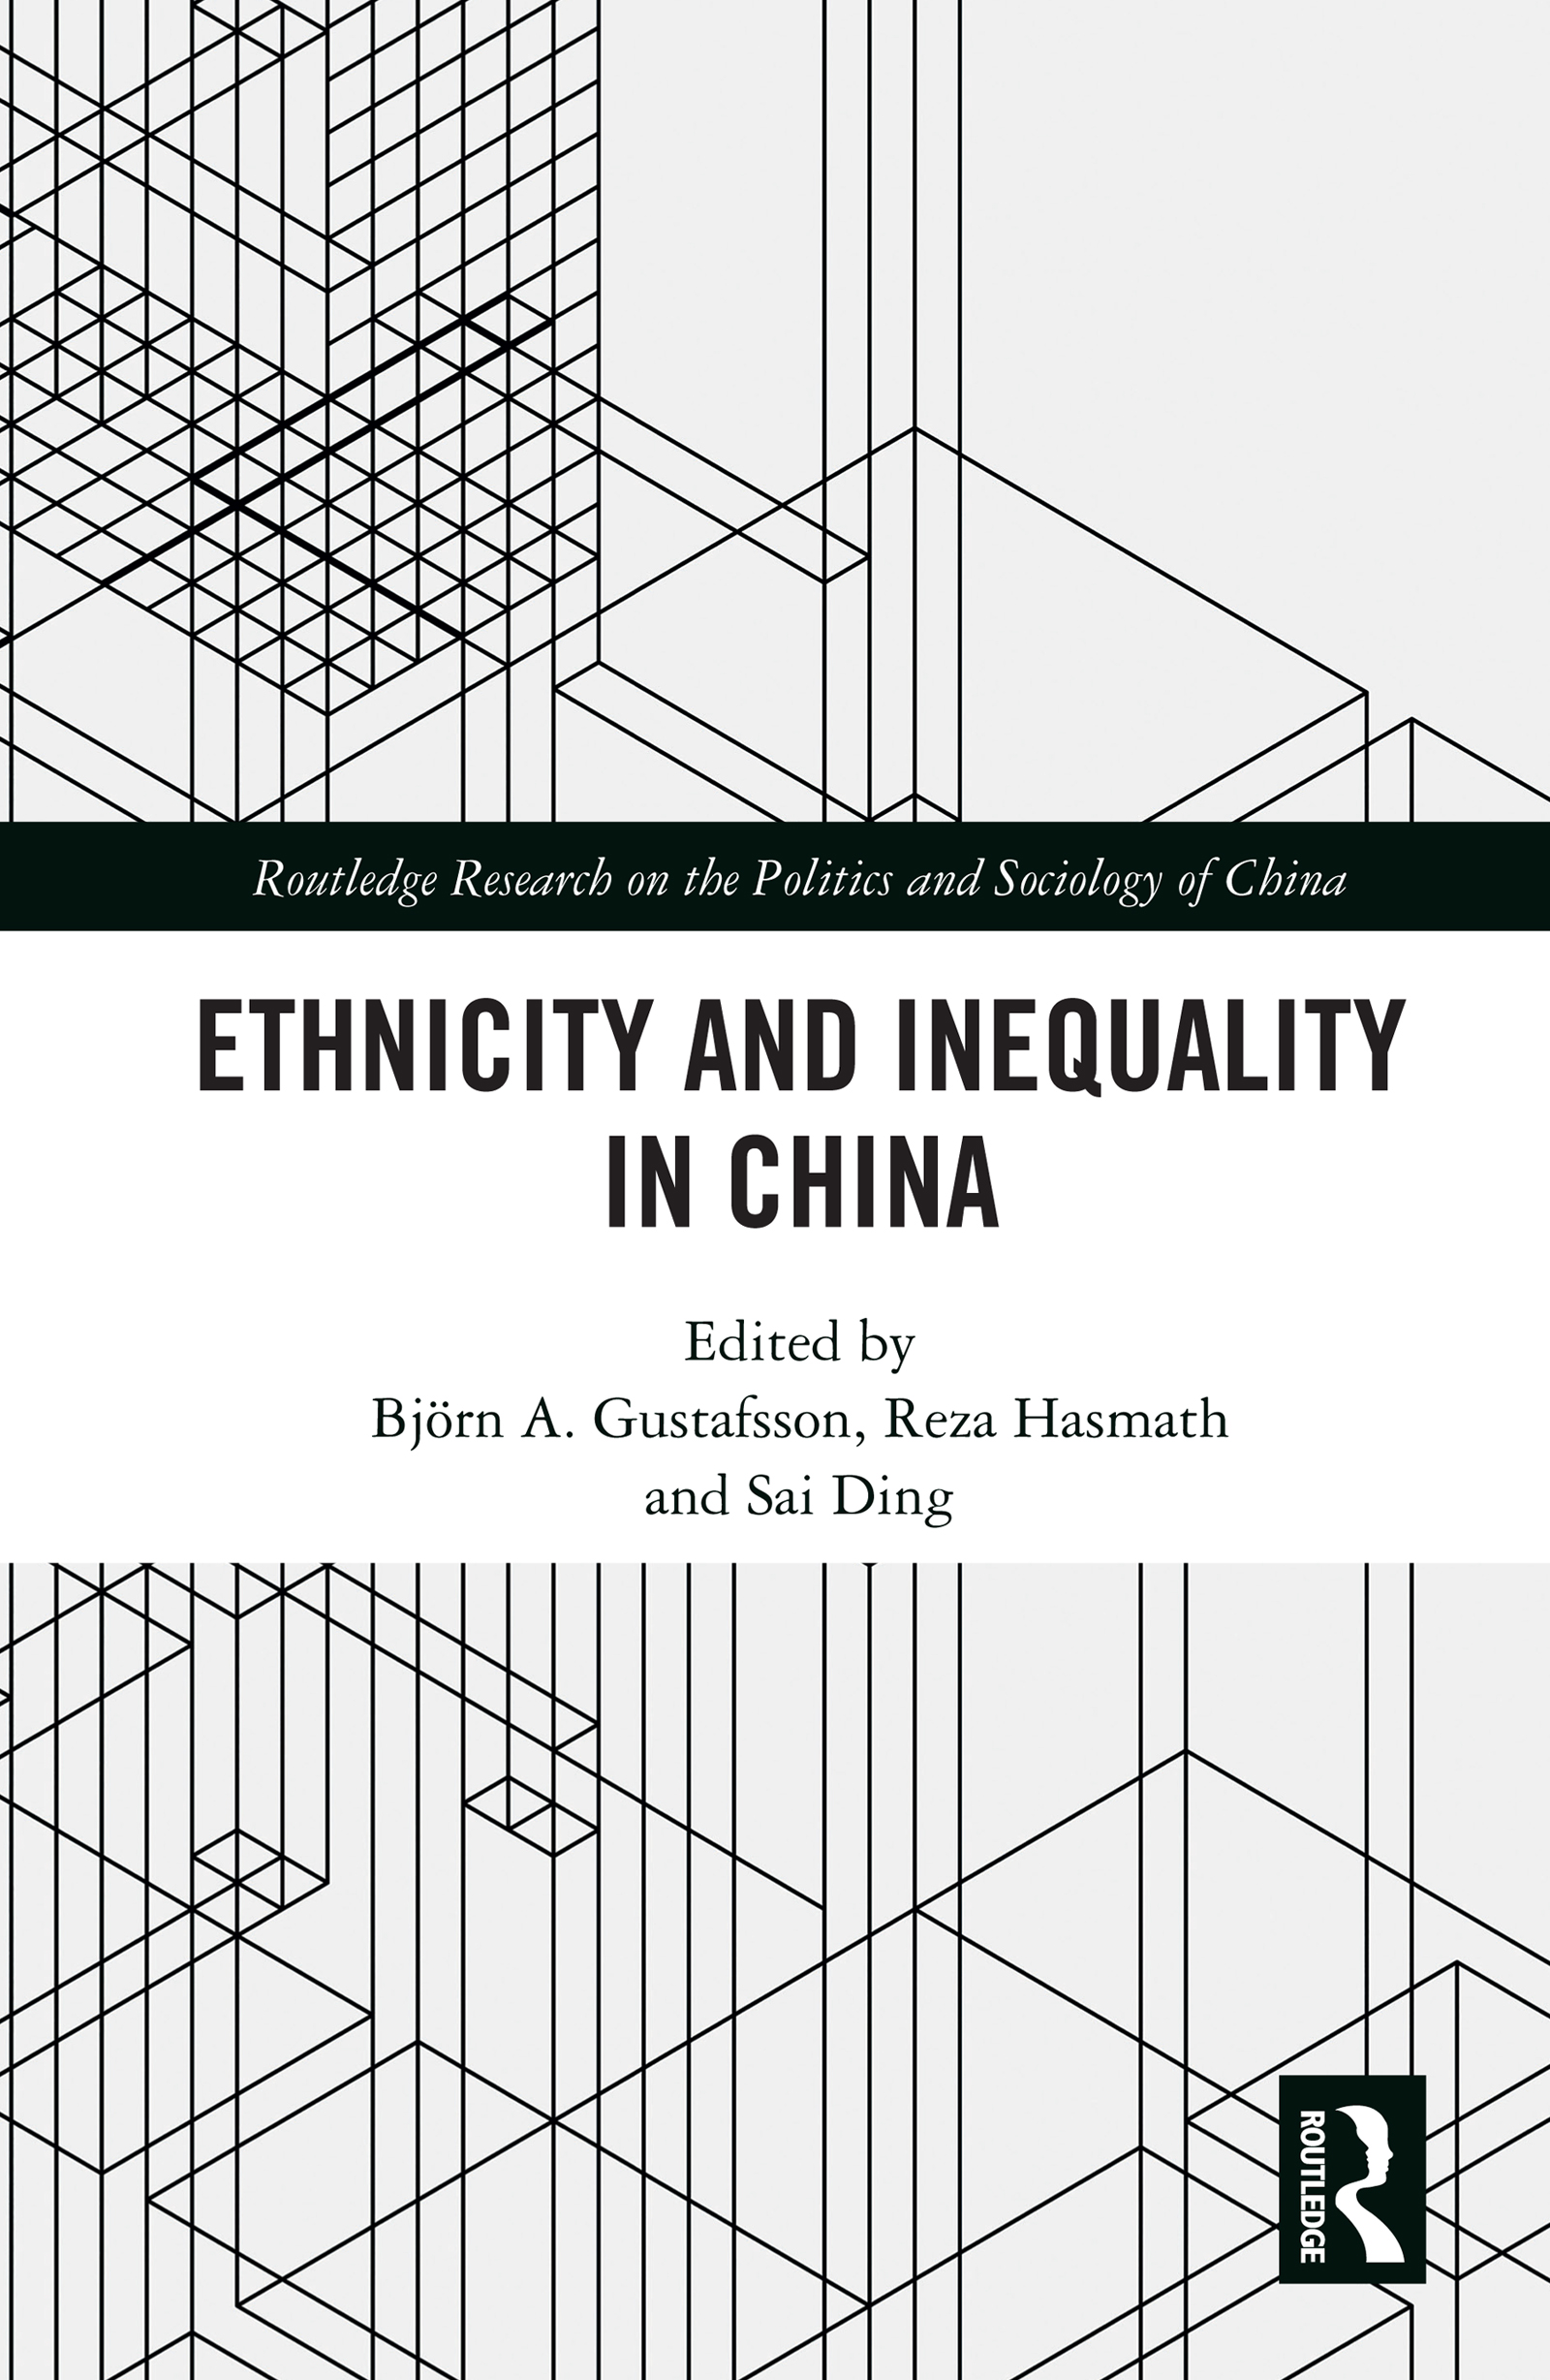 Ethnicity and Inequality in China